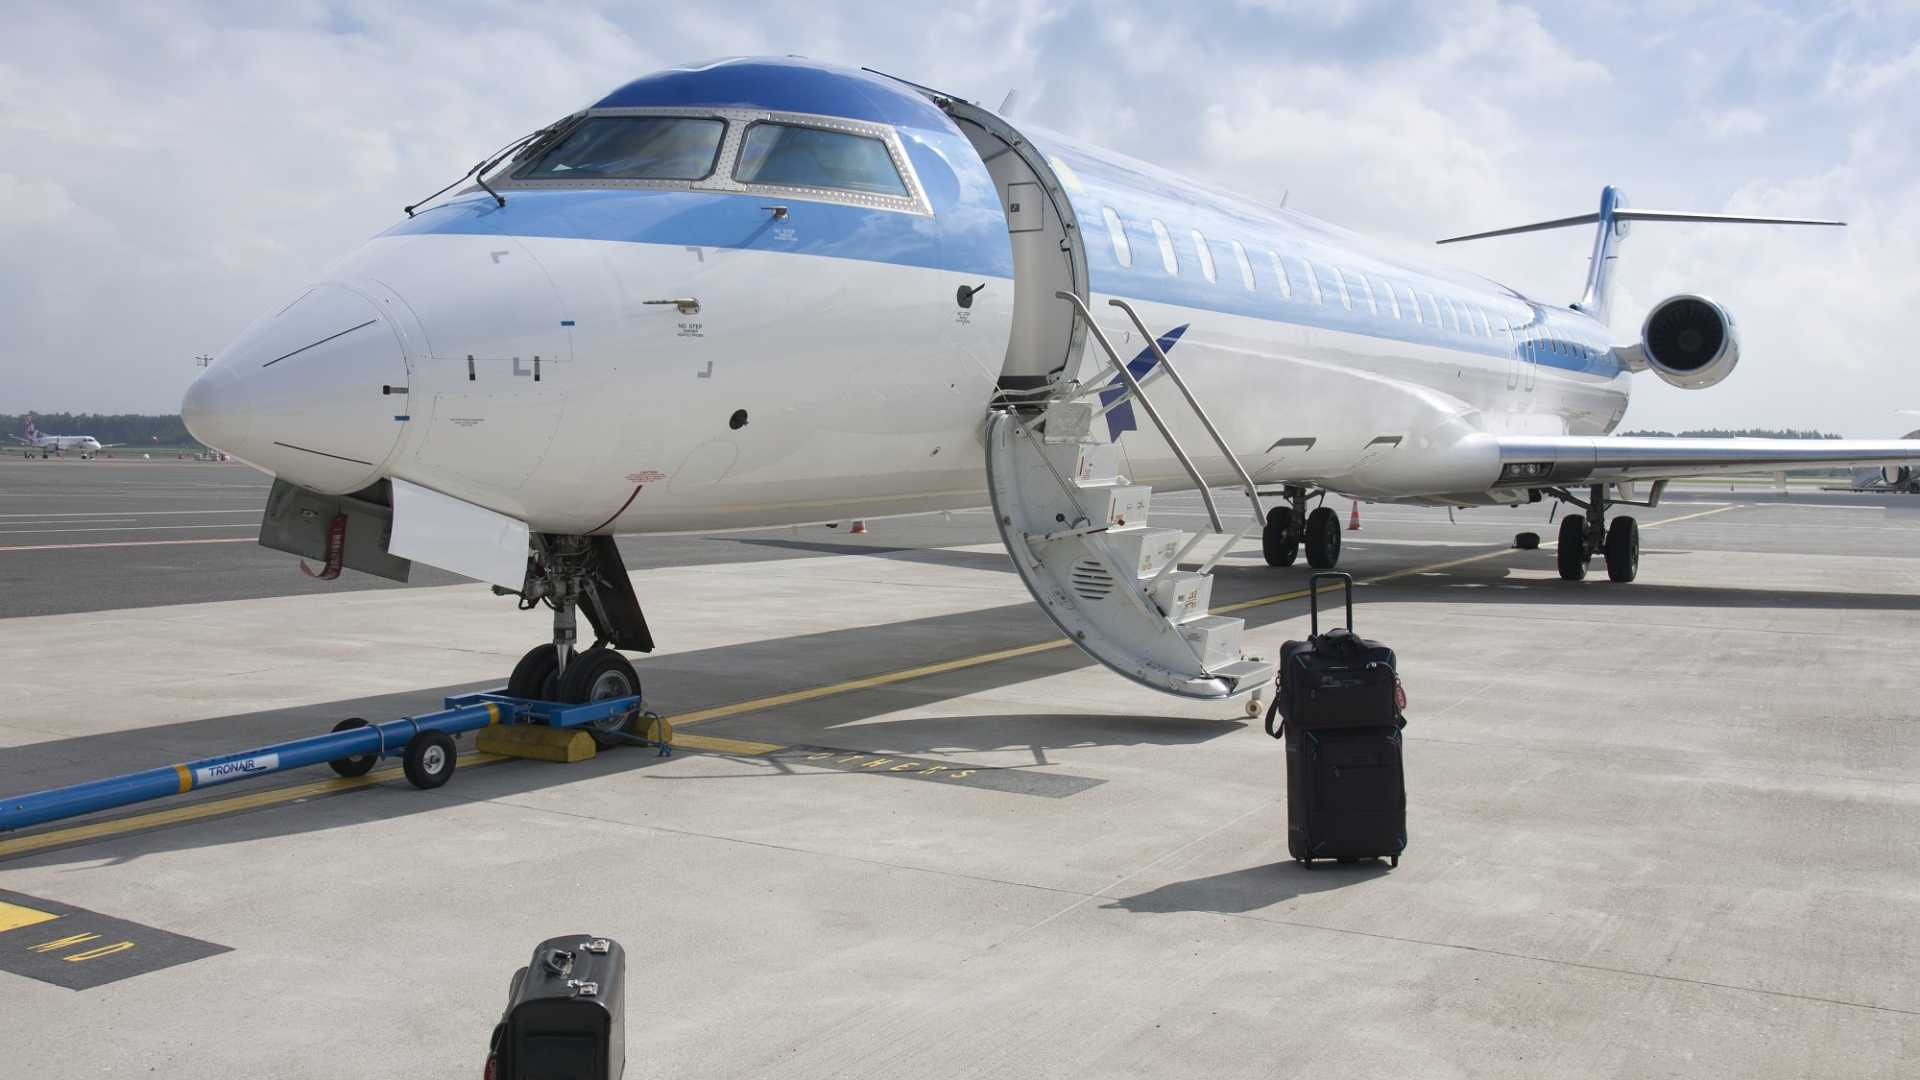 Thinking of Starting a Business? 3 Reasons to Take the Airplane (And Not the Stairs)